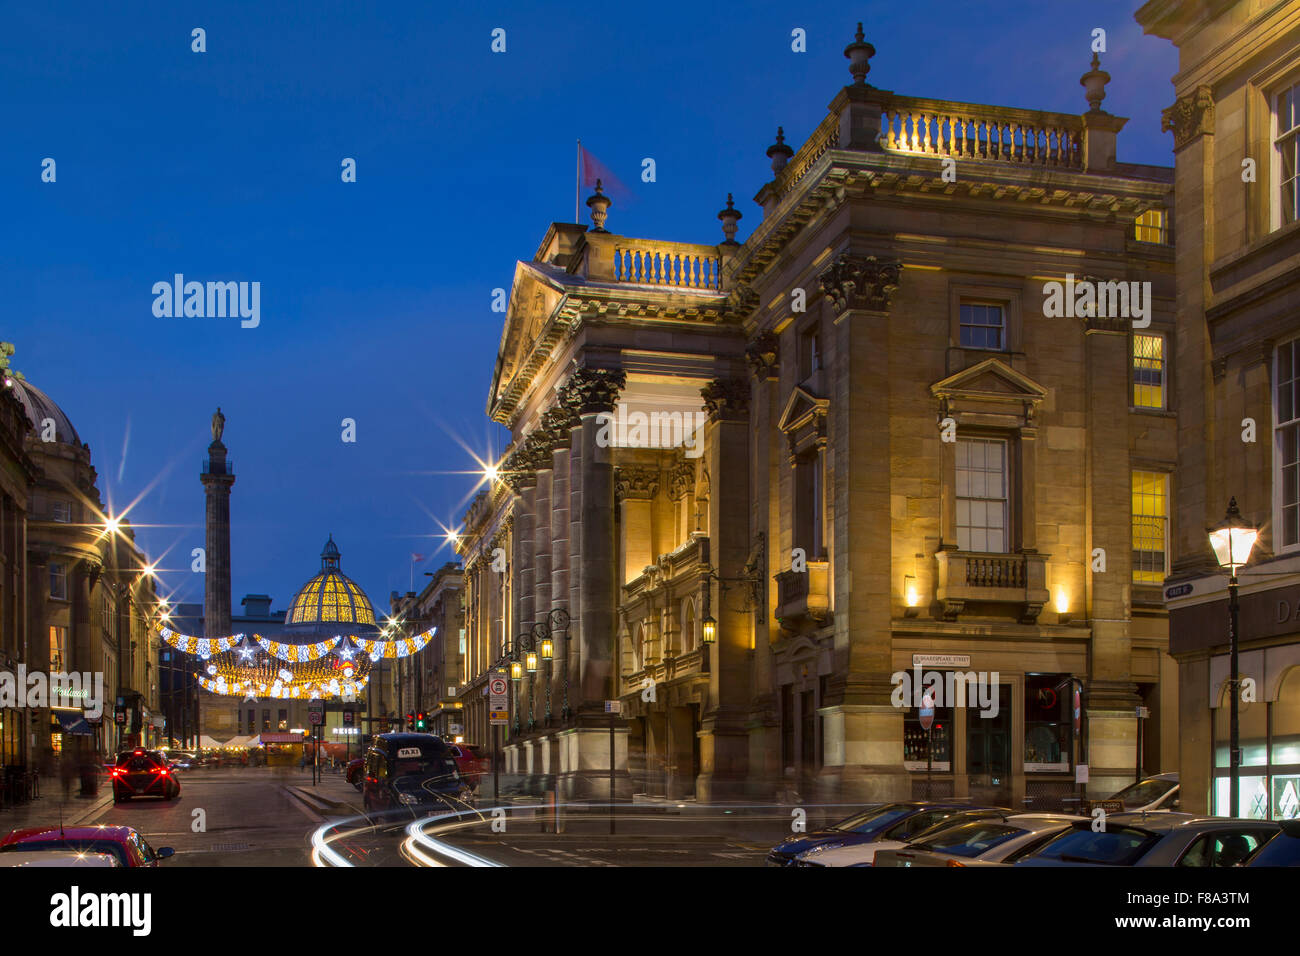 An external view of The Theatre Royal in Newcastle upon Tyne at dusk at Christmas looking towards Grey's Monument - Stock Image